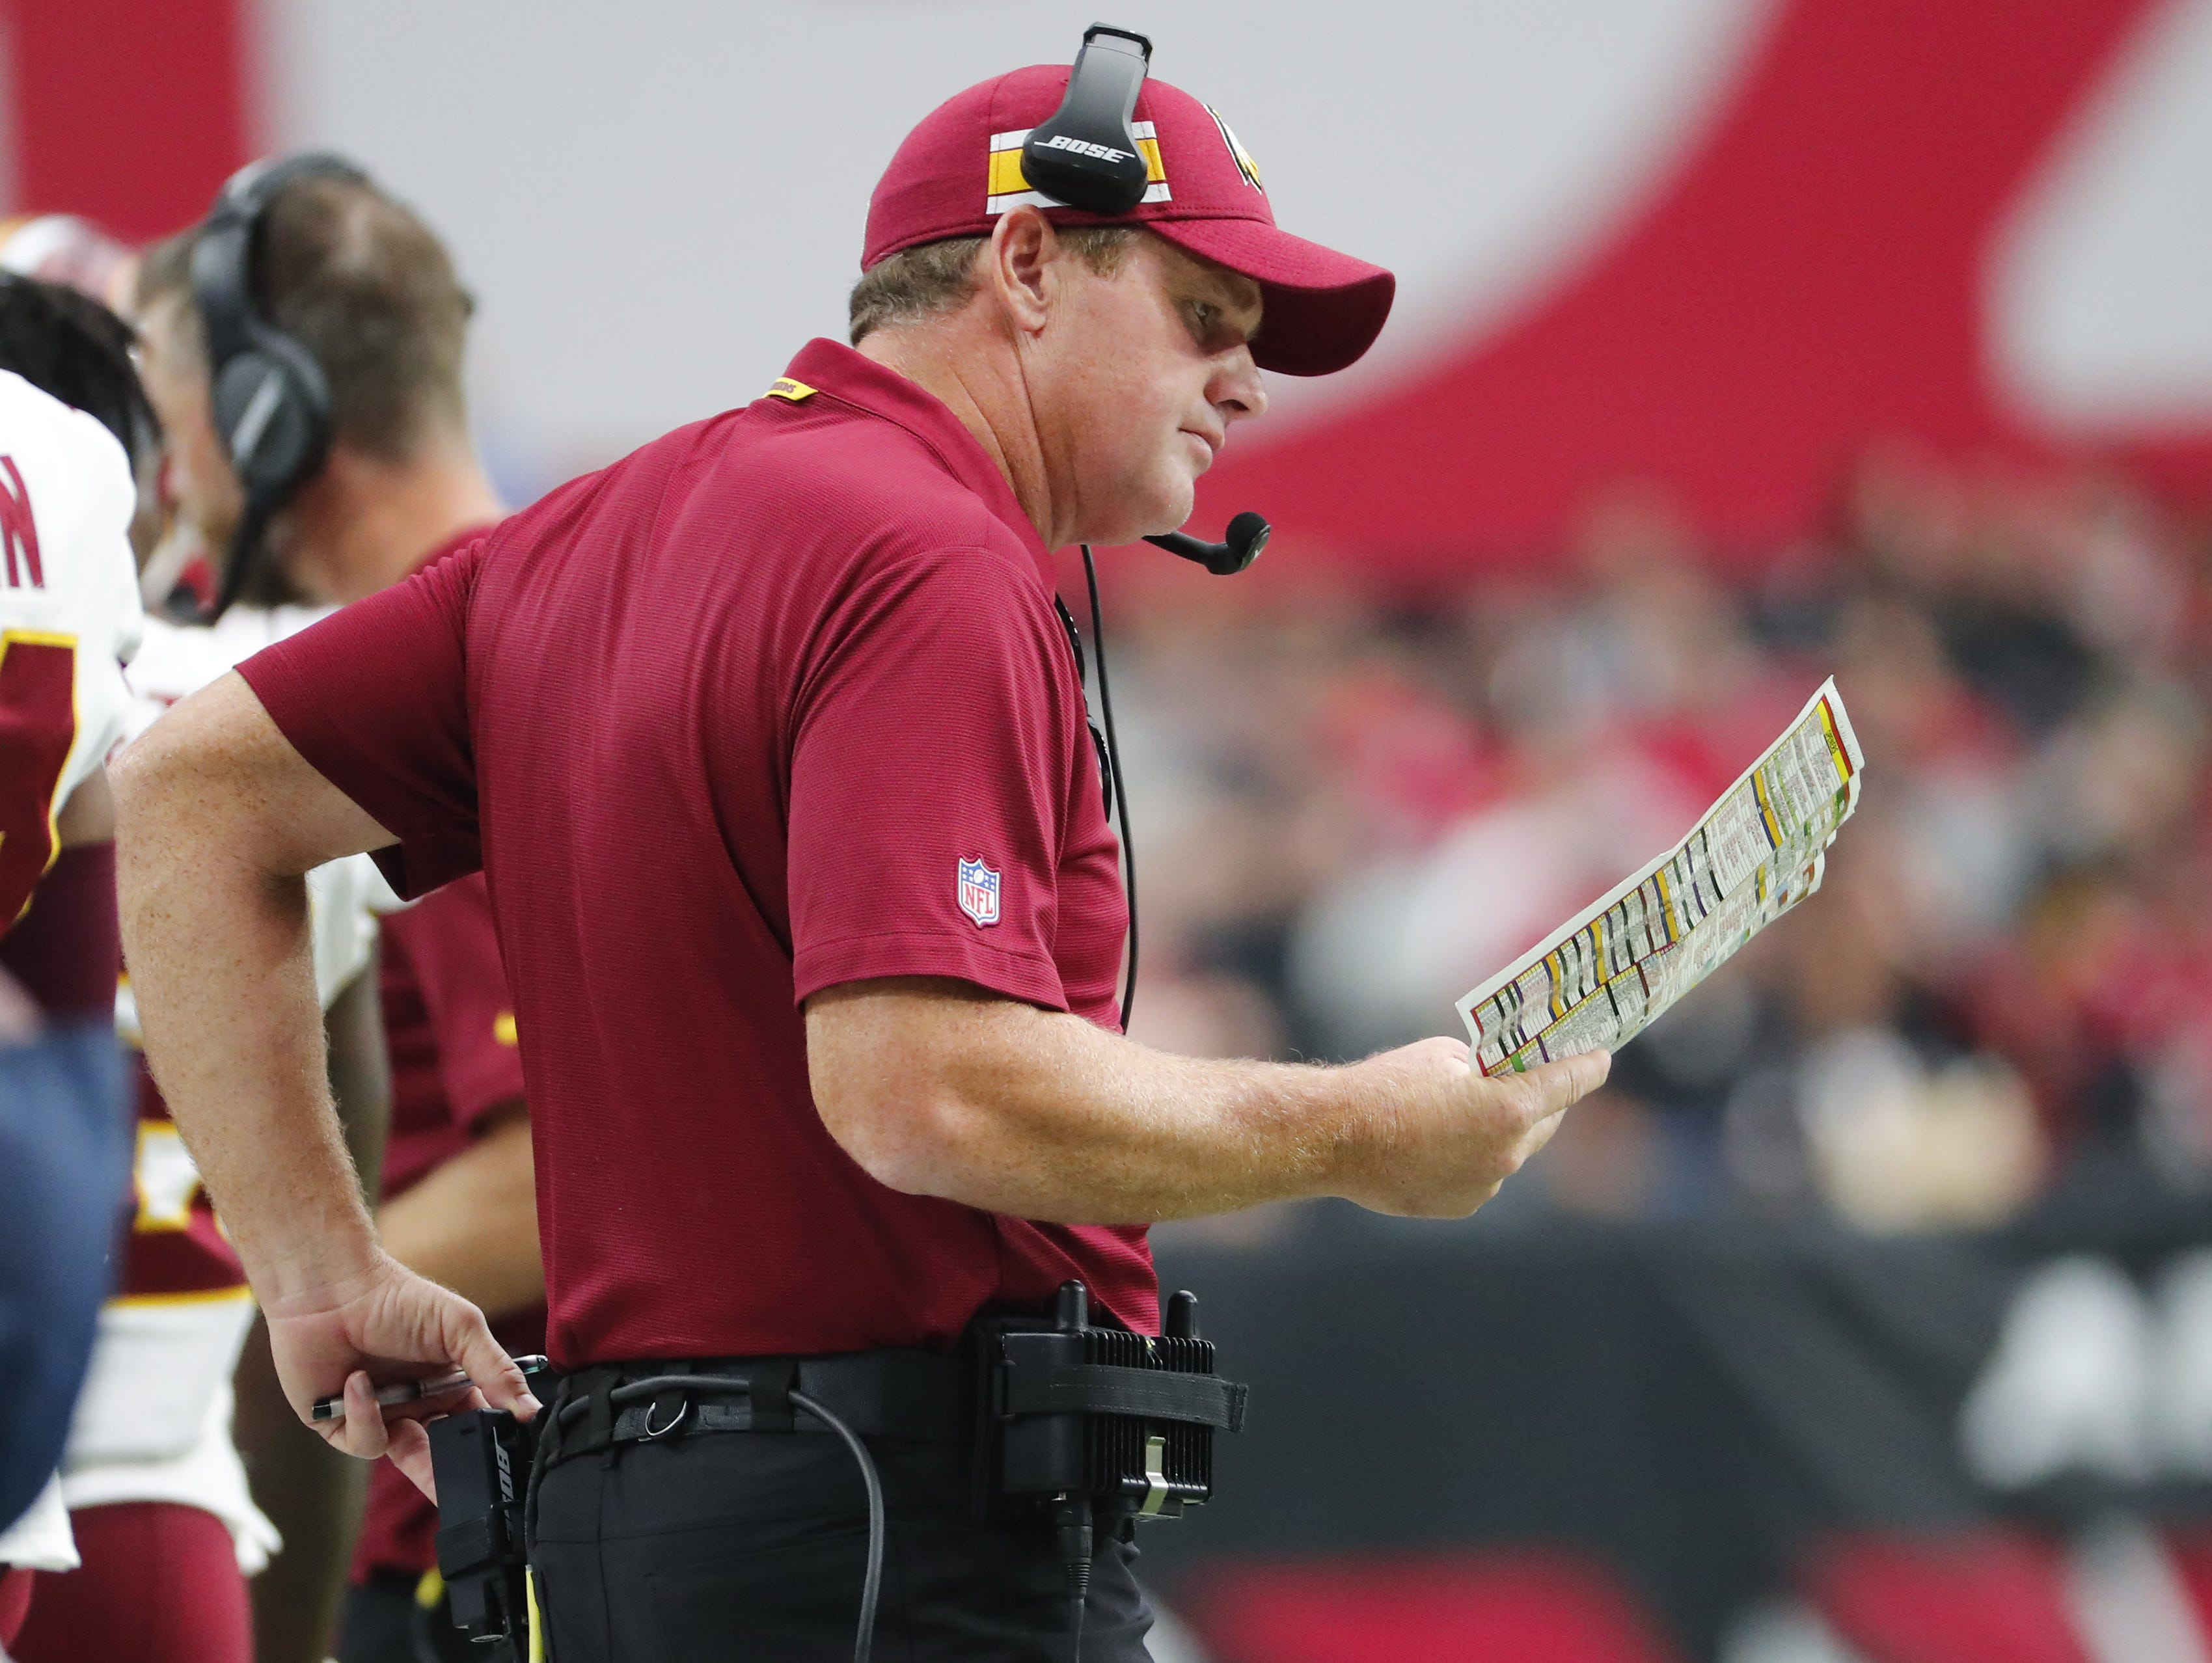 Washington Redskins head coach Jay Gruden looks at his play sheet during the third quarter against the Arizona Cardinals at State Farm Stadium in Glendale, Ariz. September 9. 2018.